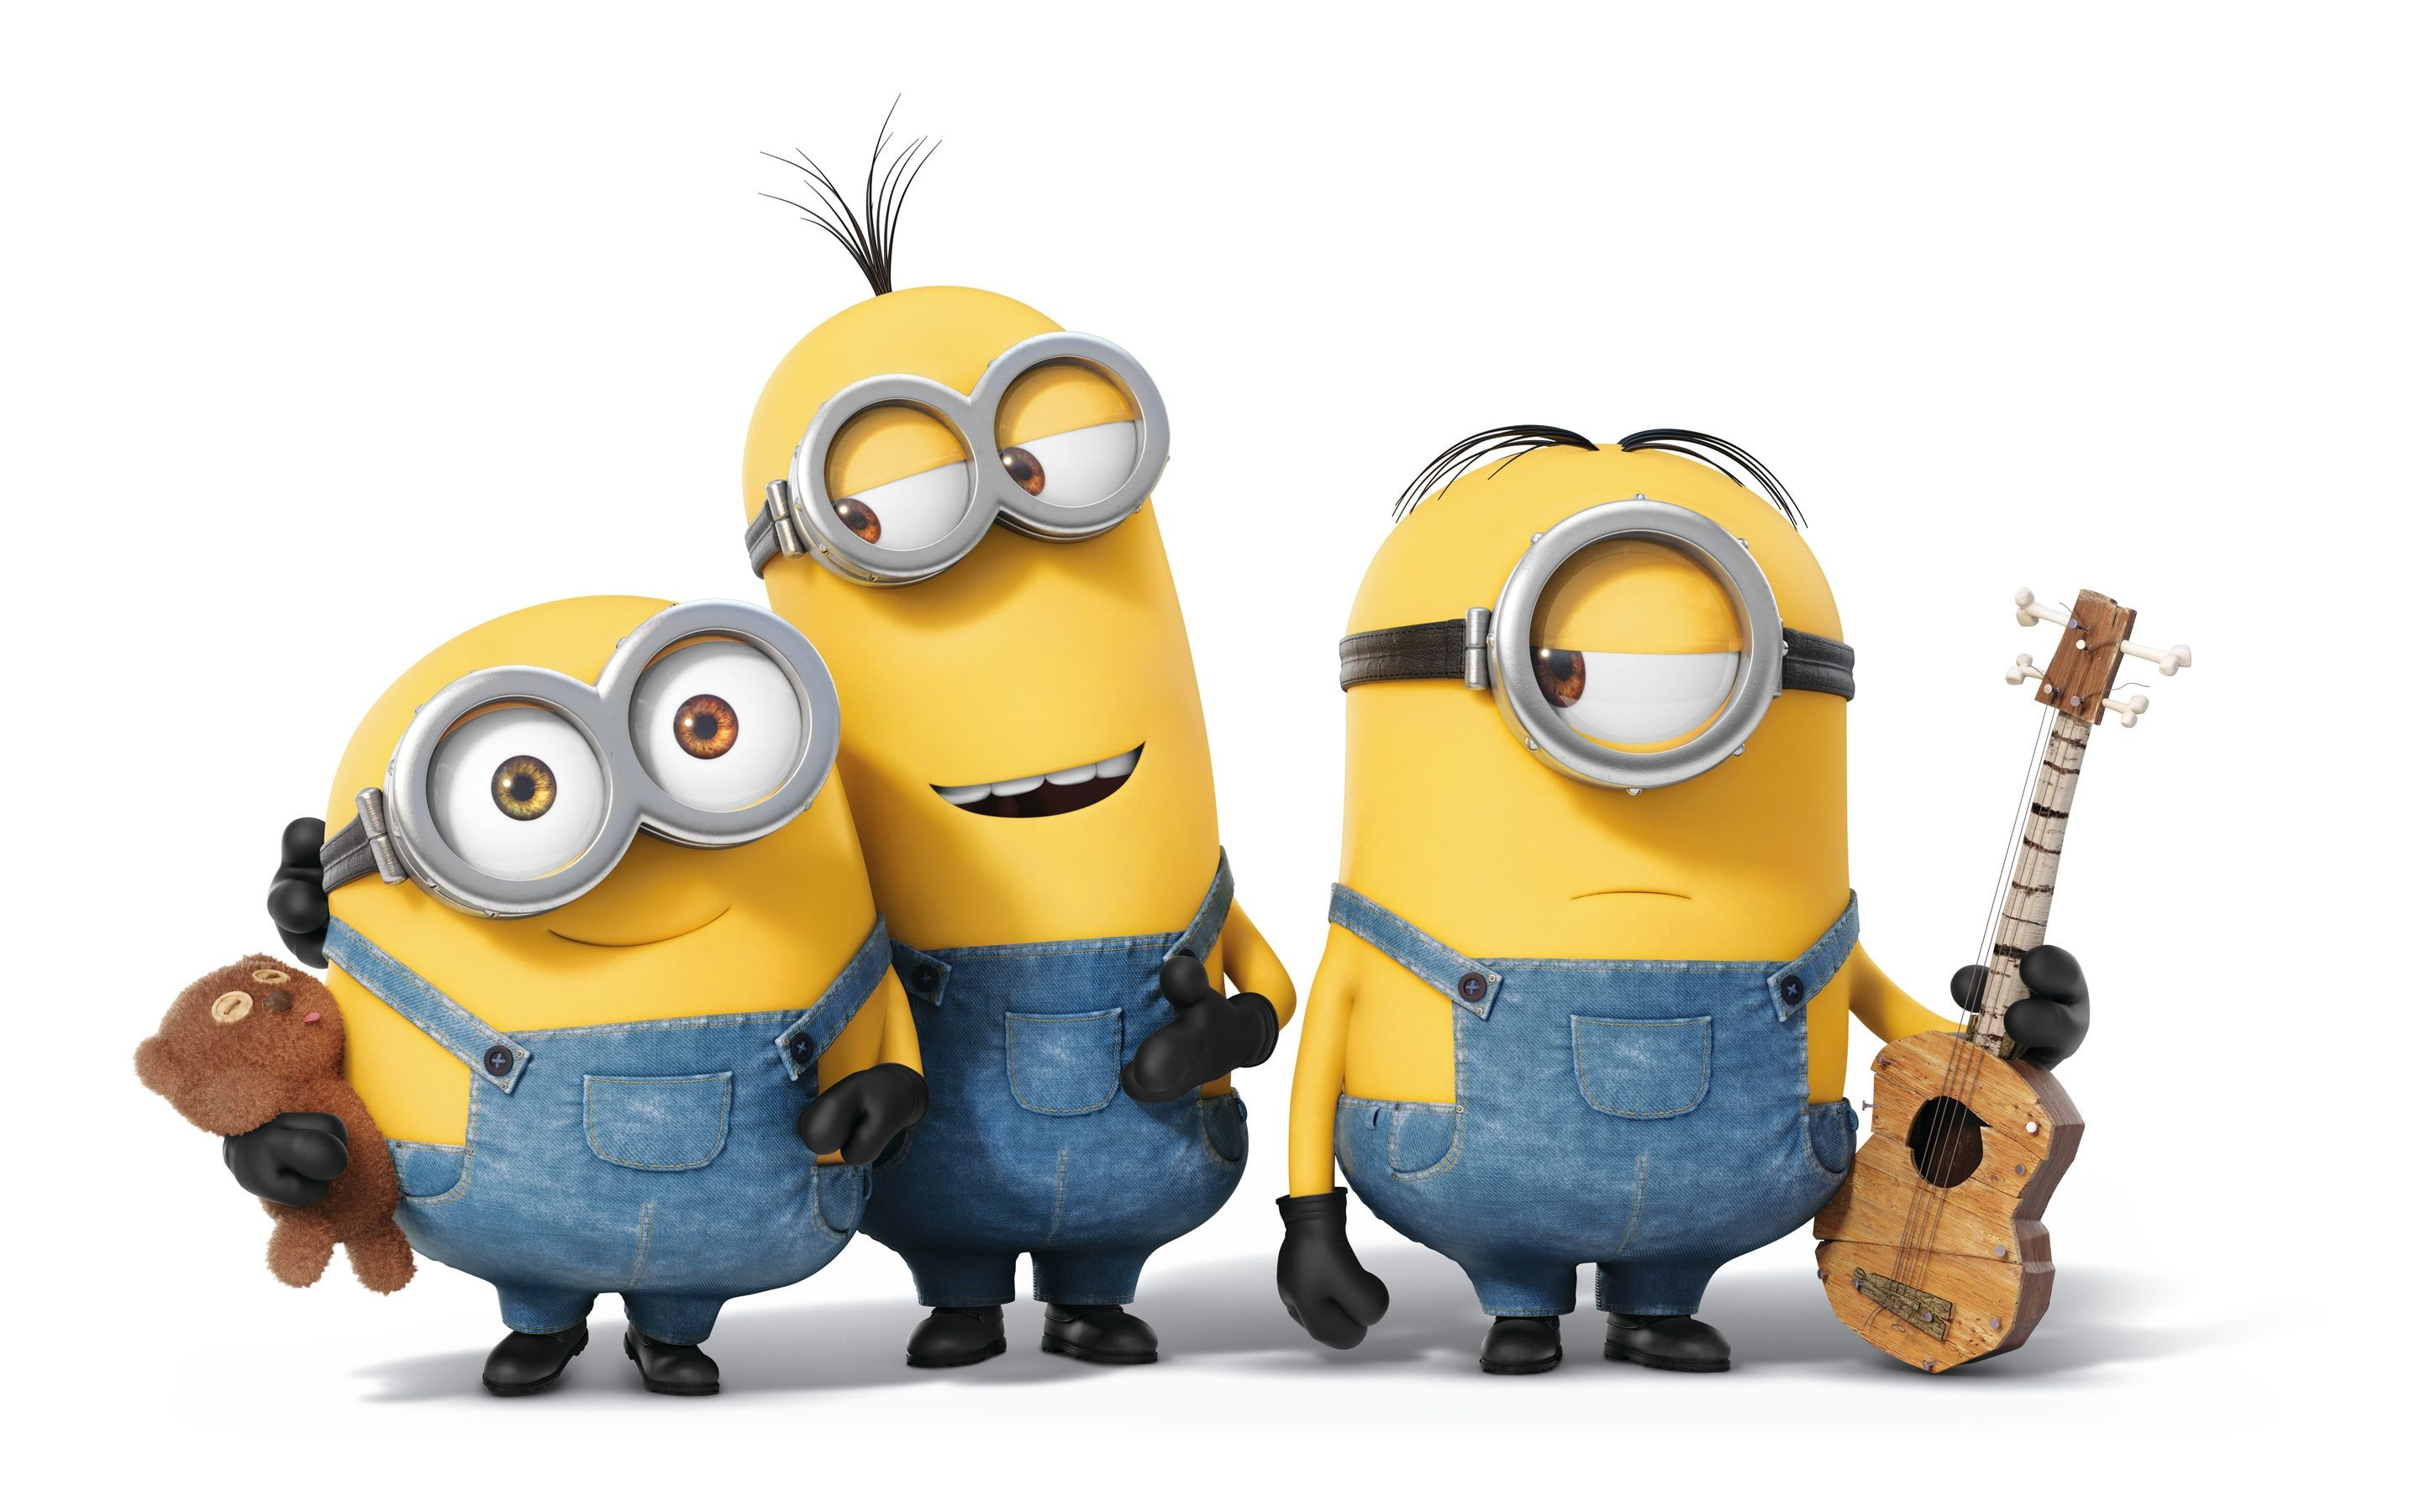 Minions Comedy Movie Wallpapers